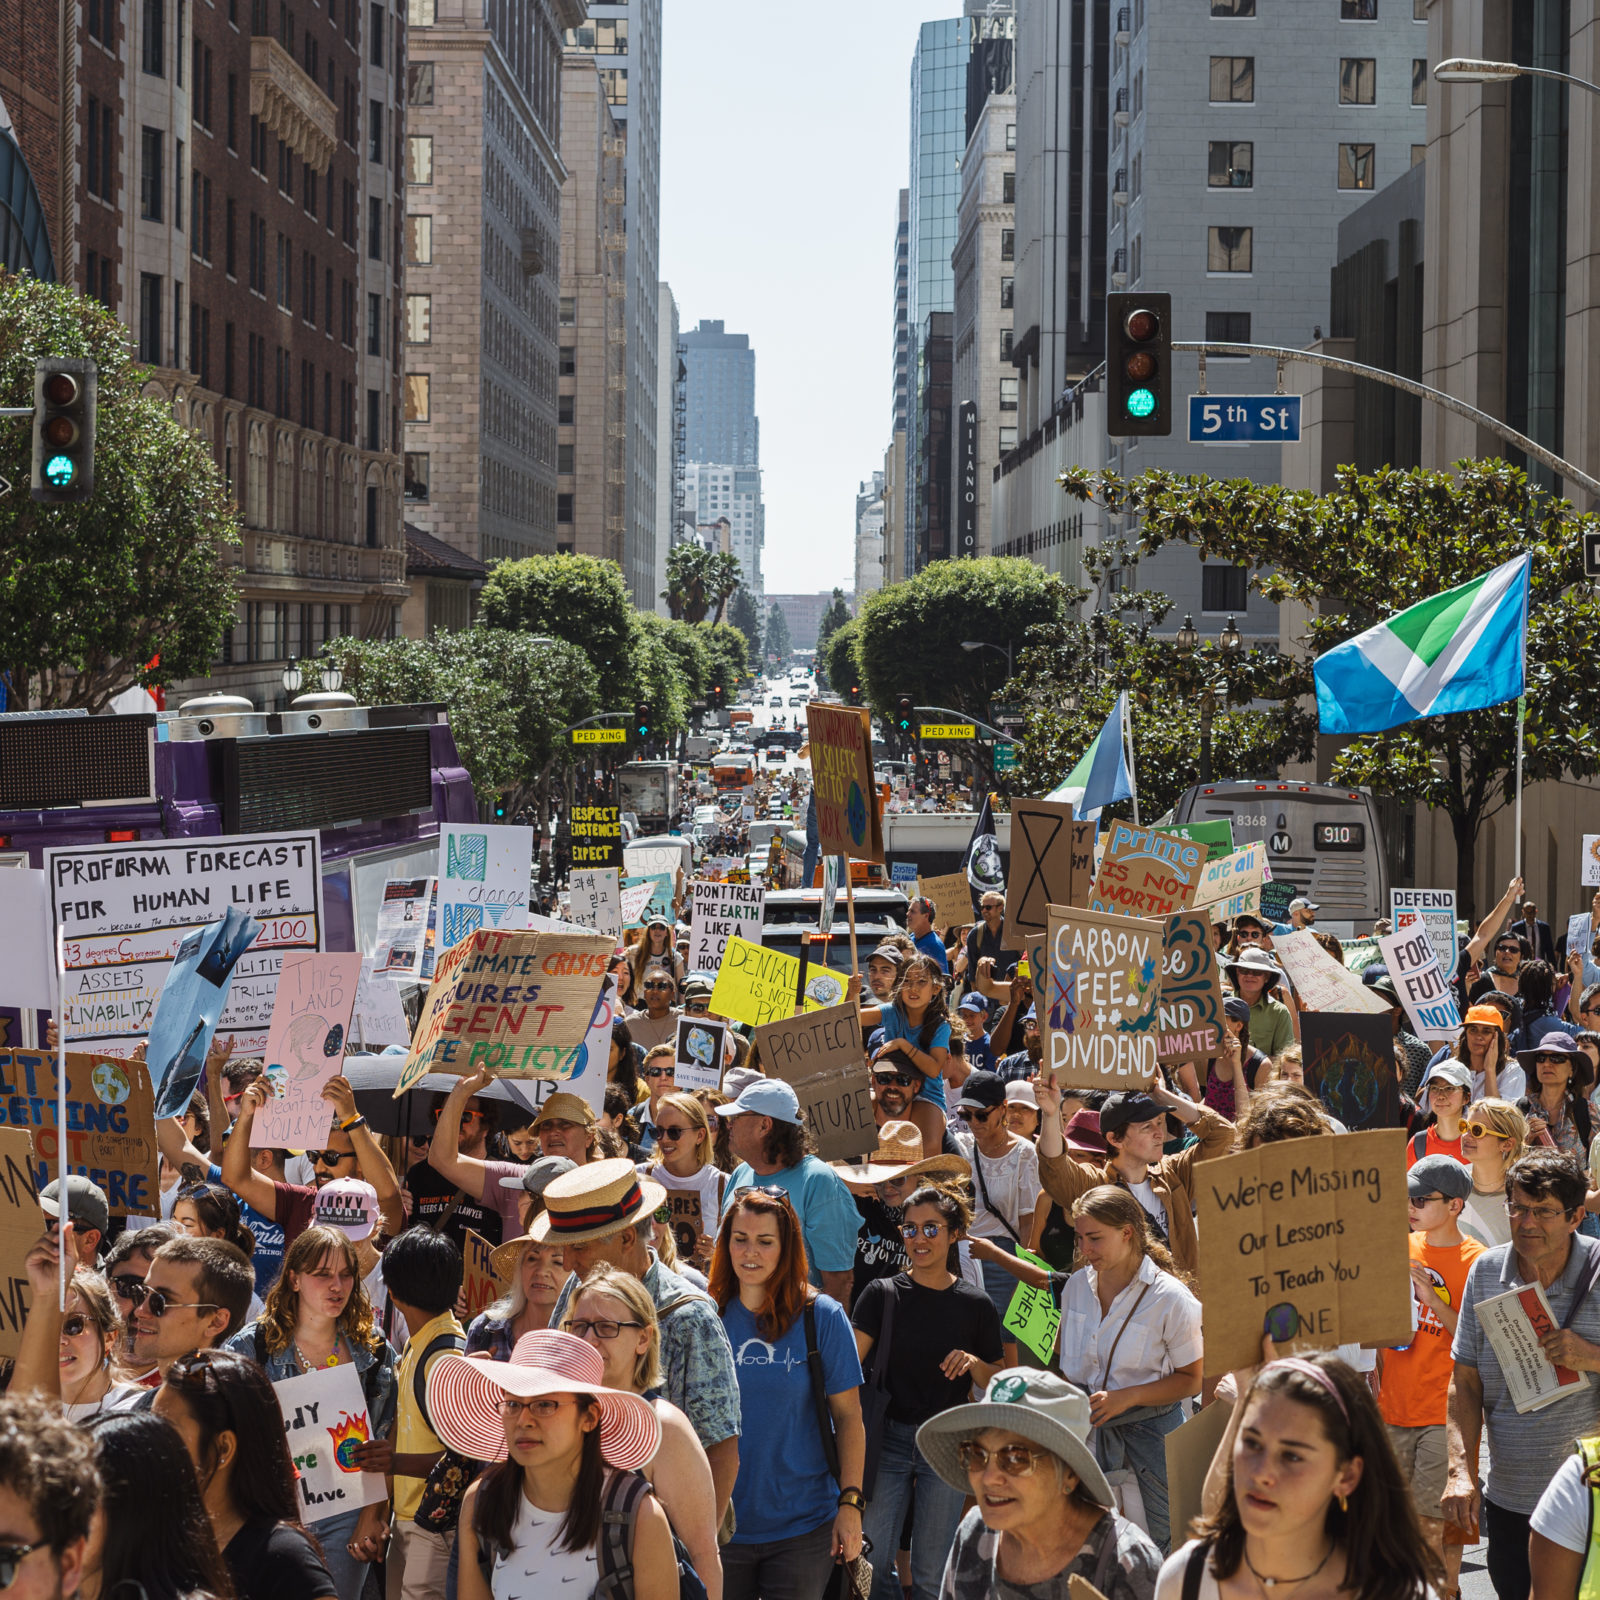 A large crowd of people filling the street during the September 2019 Climate Strike.